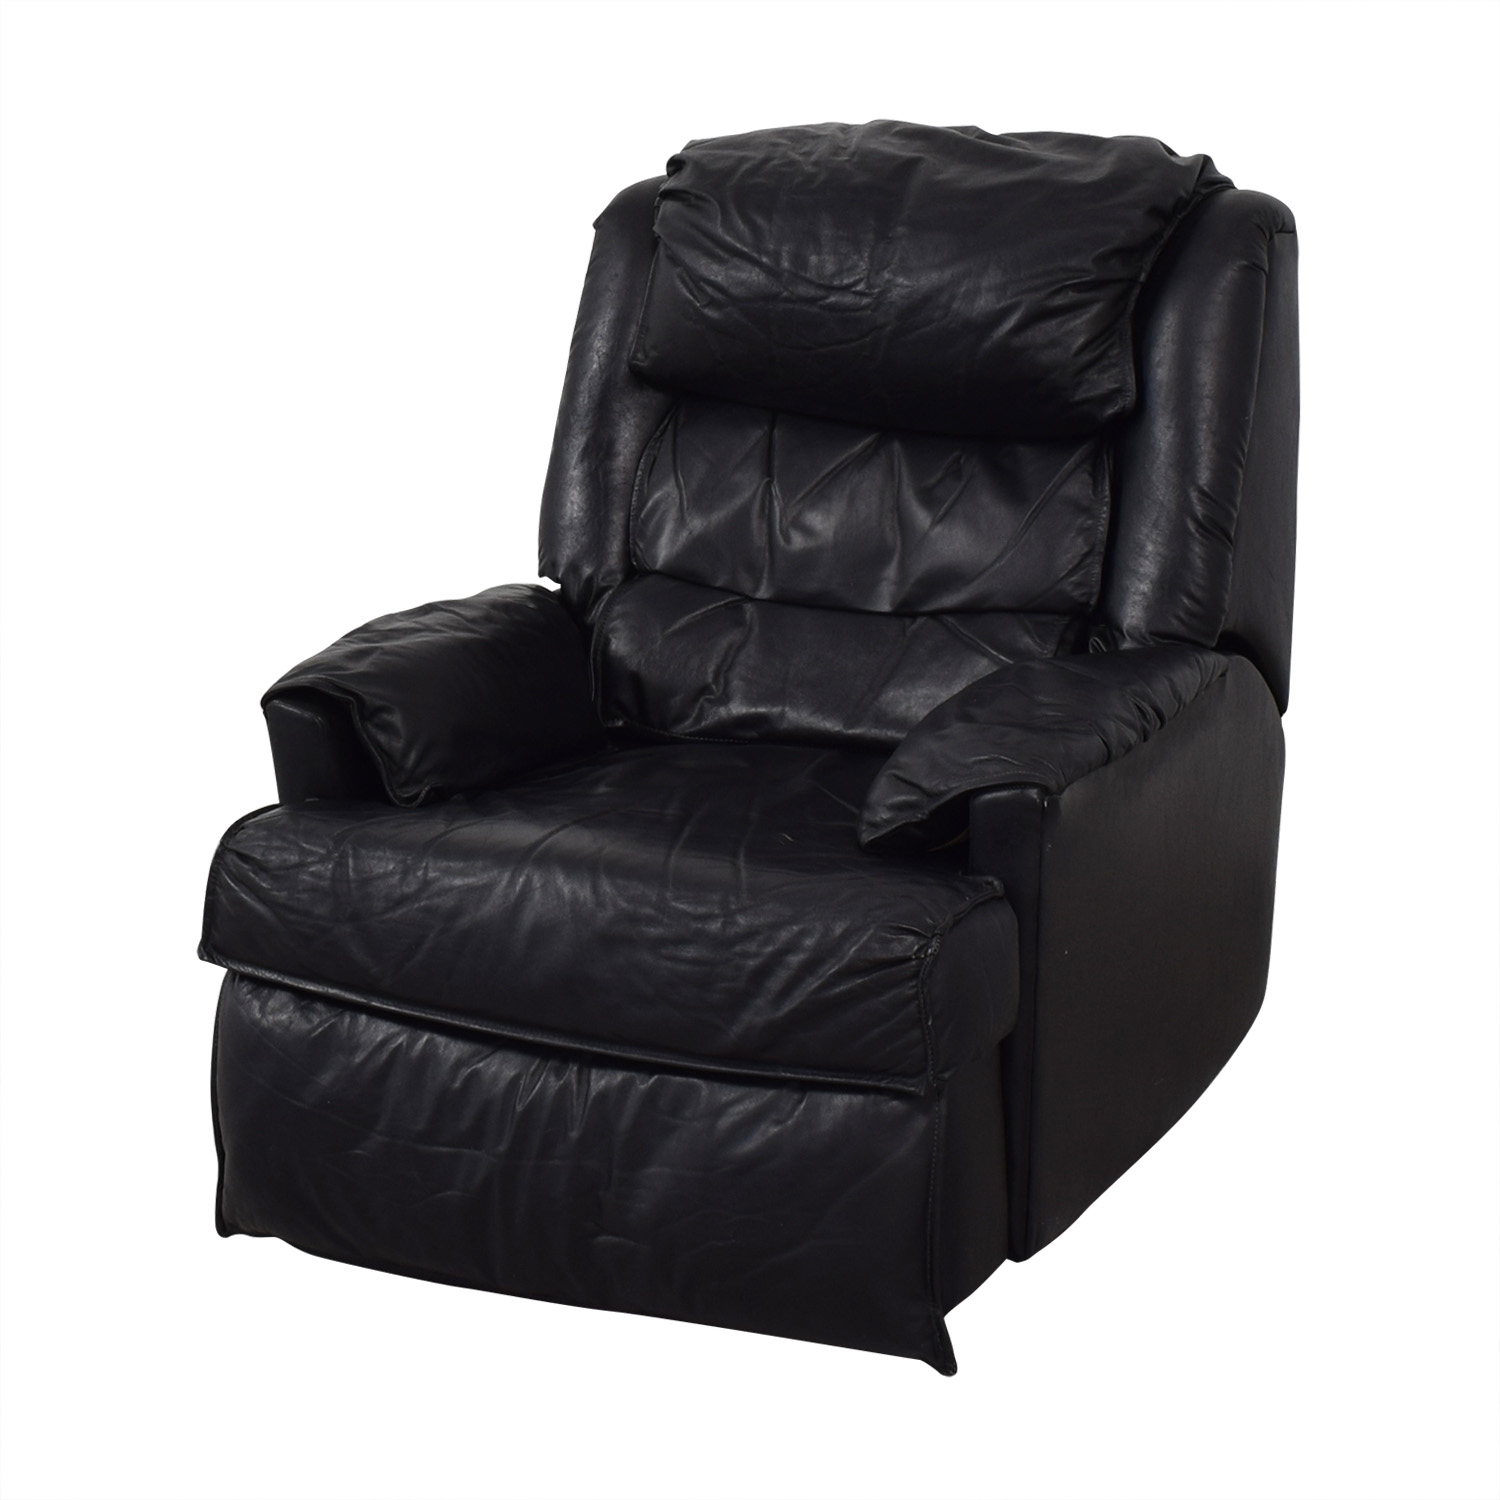 Barcalounger Leather Recliner / Recliners